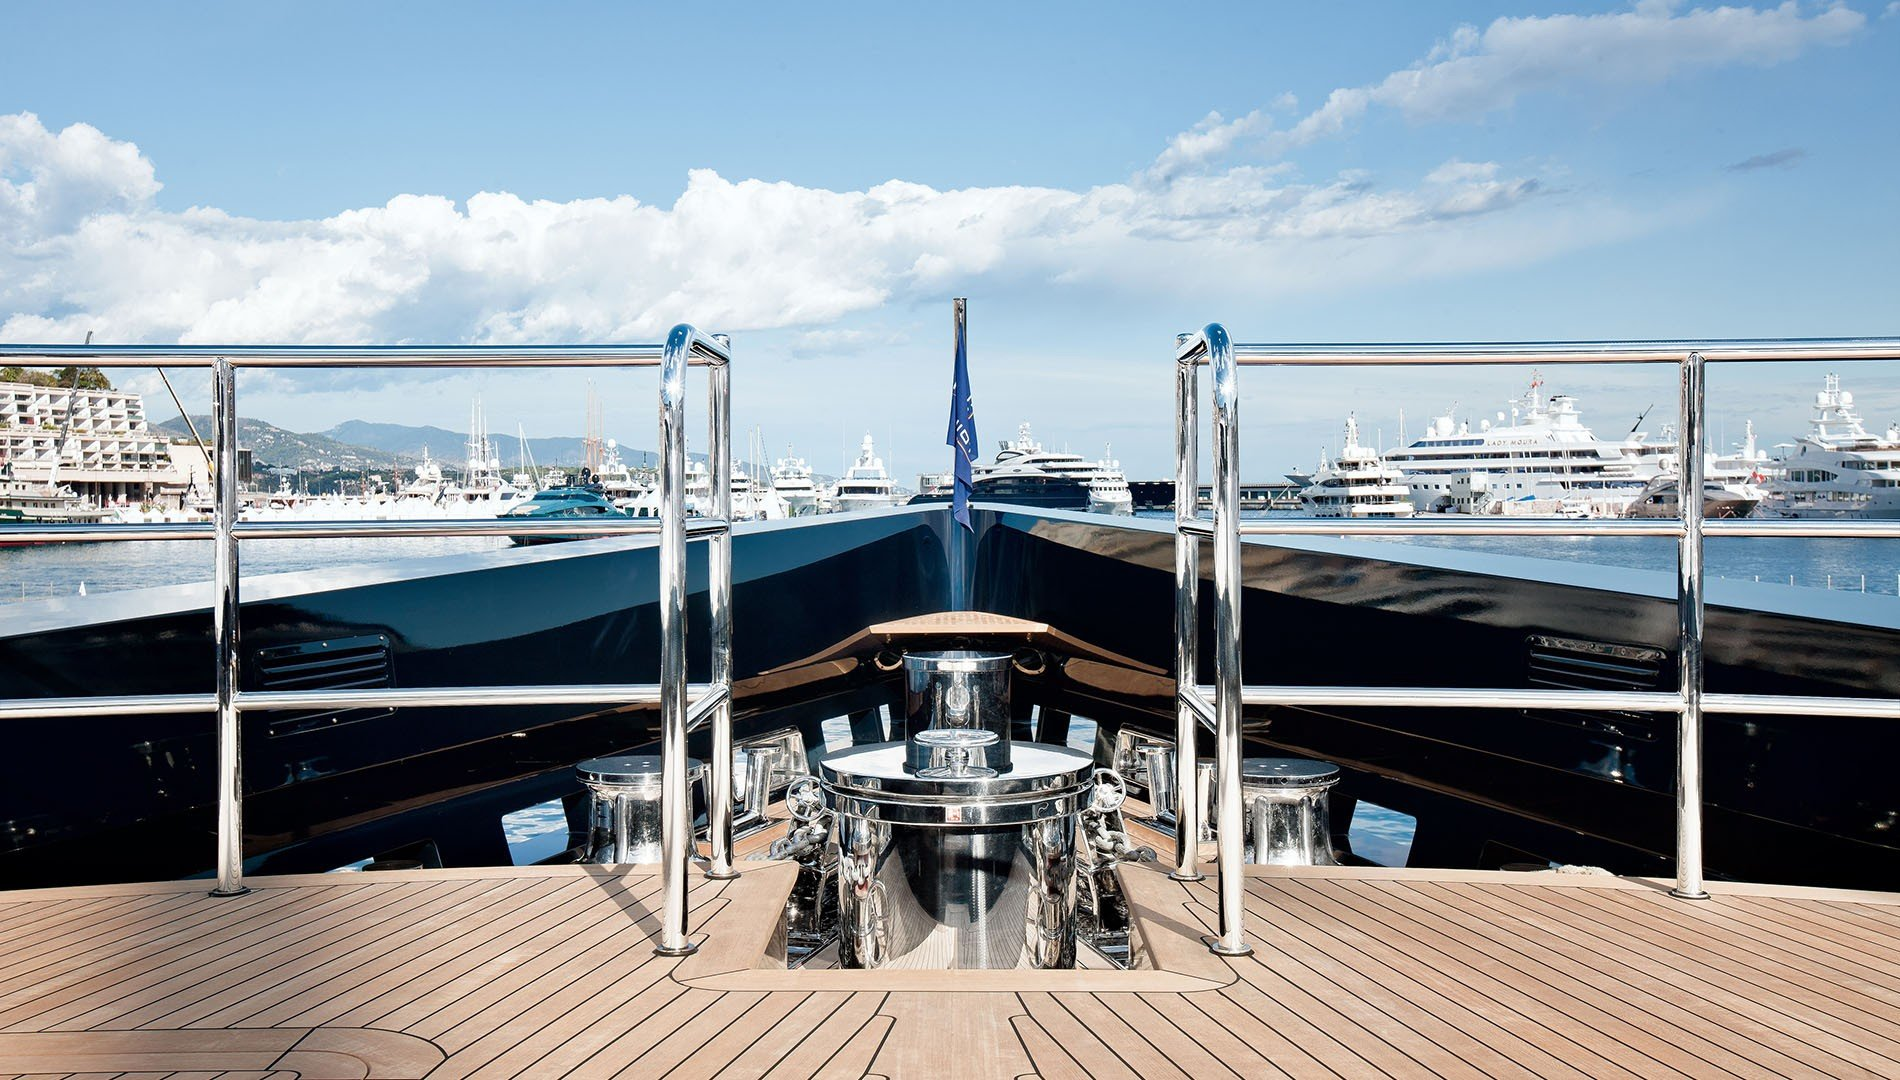 Yacht Picchiotti 183 - photo 5 of 15